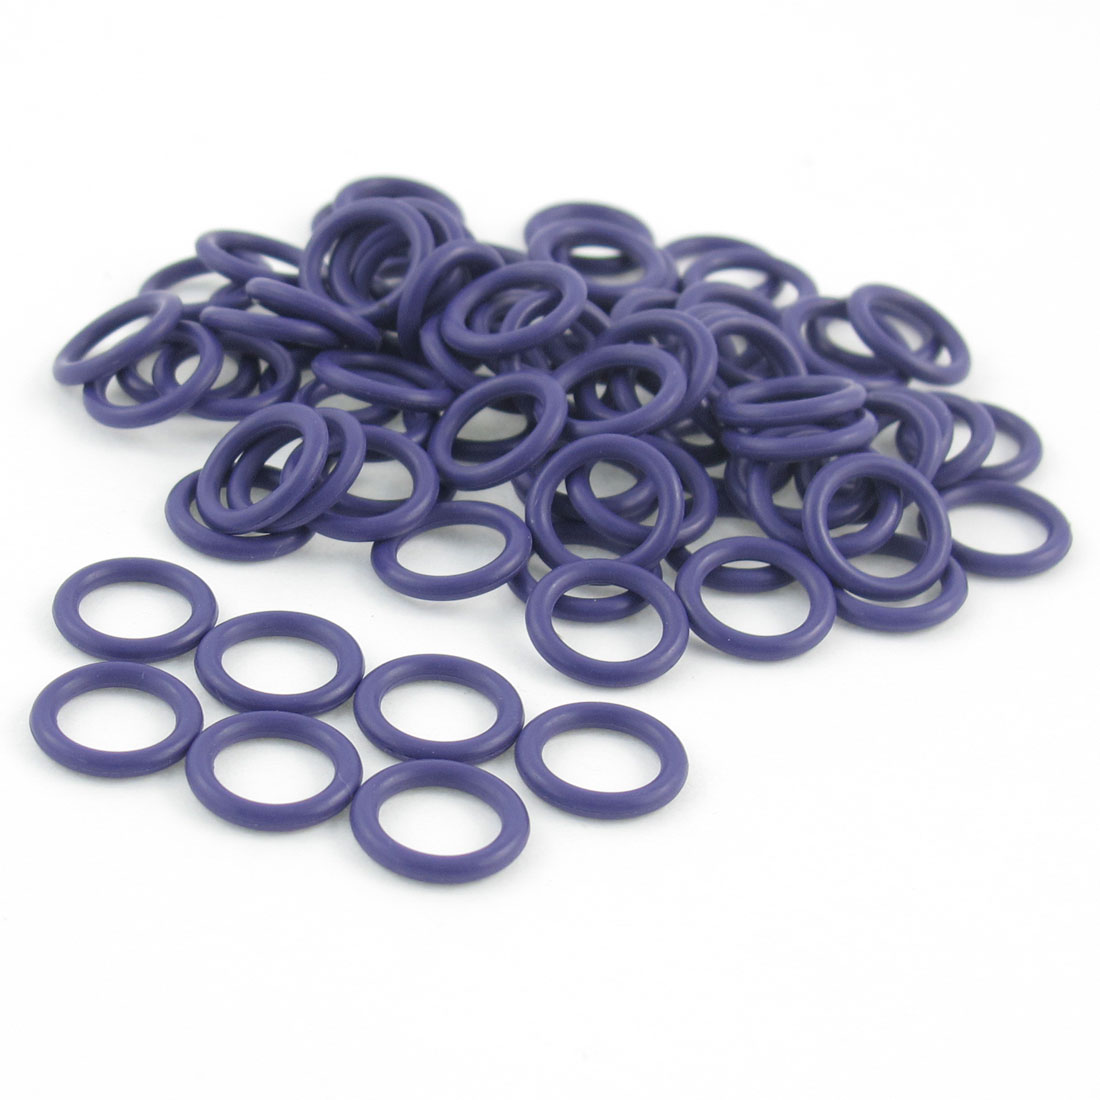 100 Pcs 11 x 8 x 1.7mm HNBR Air Condition O Rings Purple for Auto Car